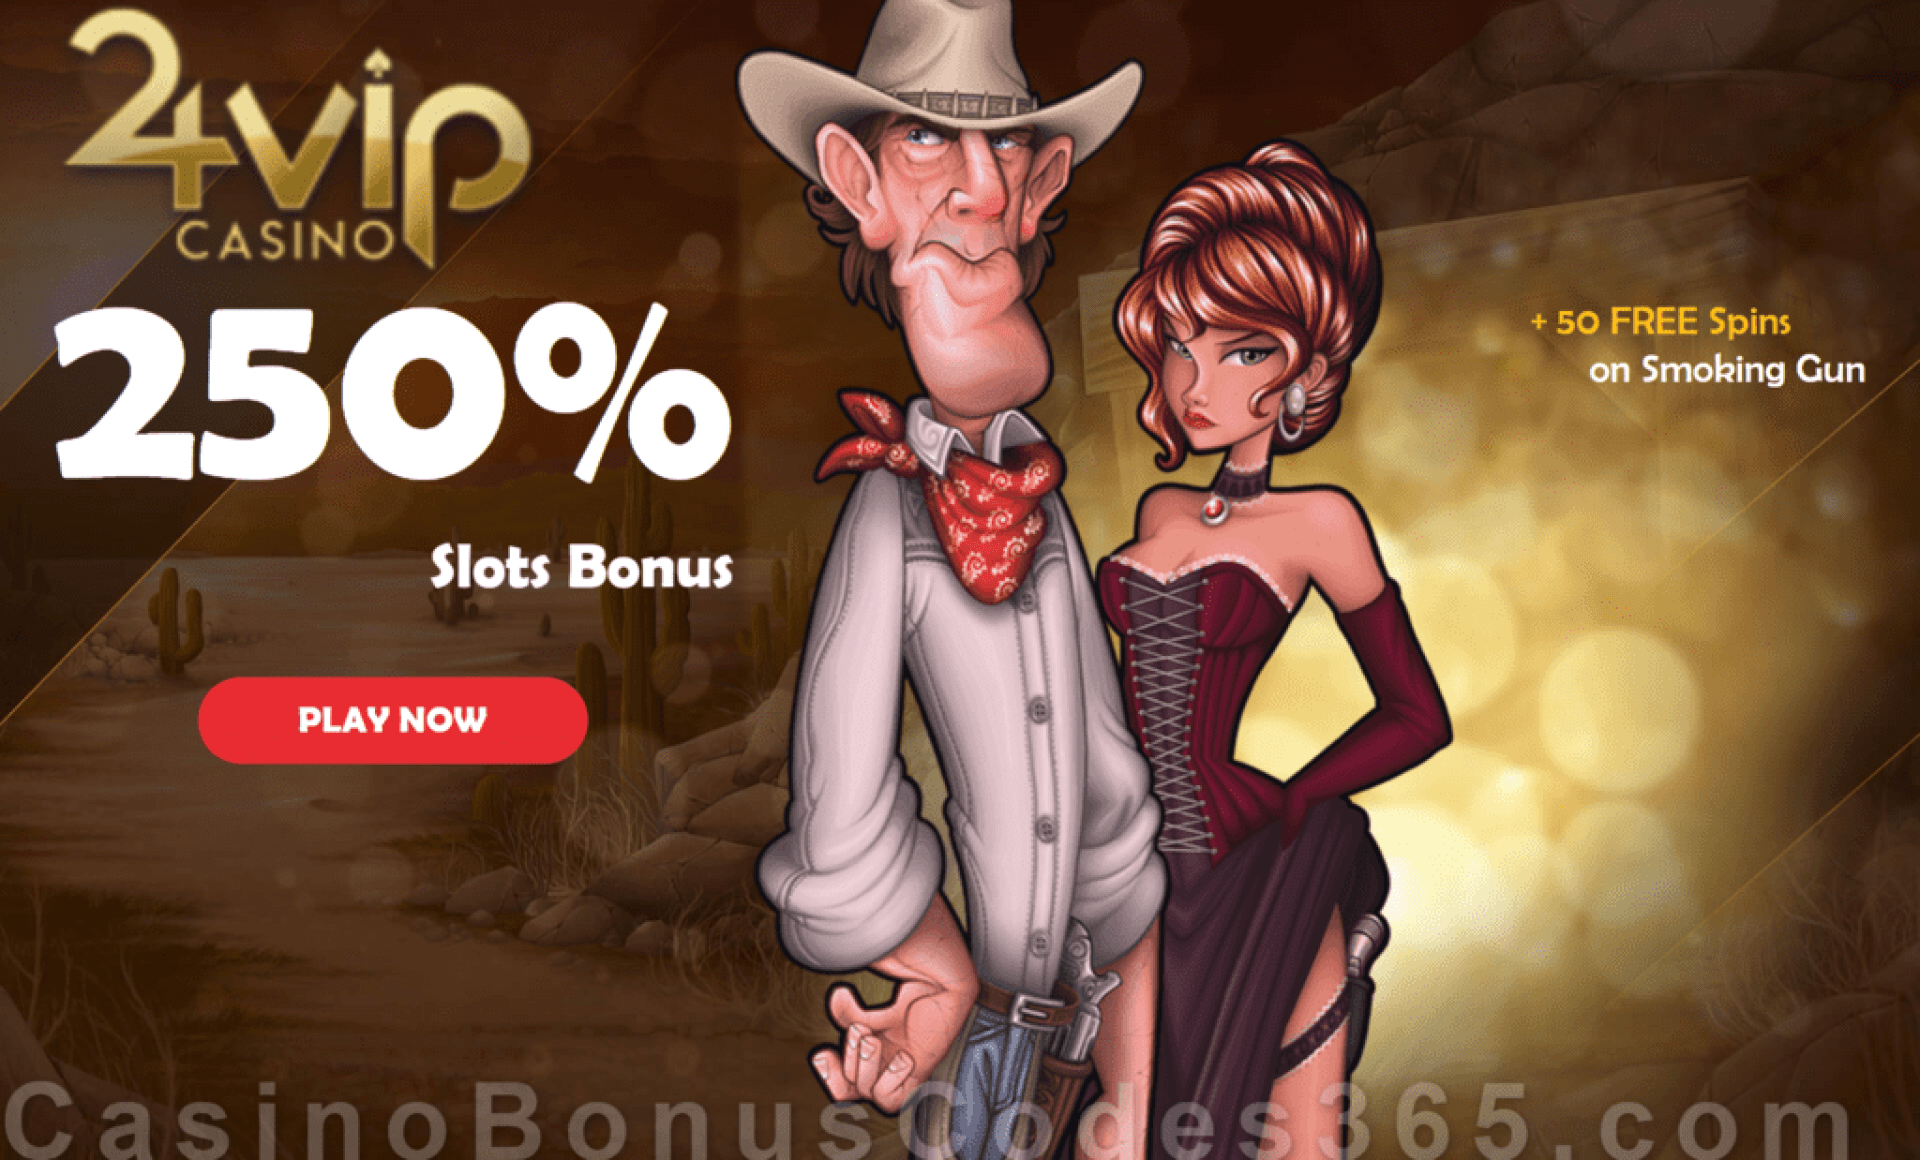 24VIP Casino 250% Match Bonus plus 50 FREE Spins on Rival Gaming Smoking Gun New Players Special Offer